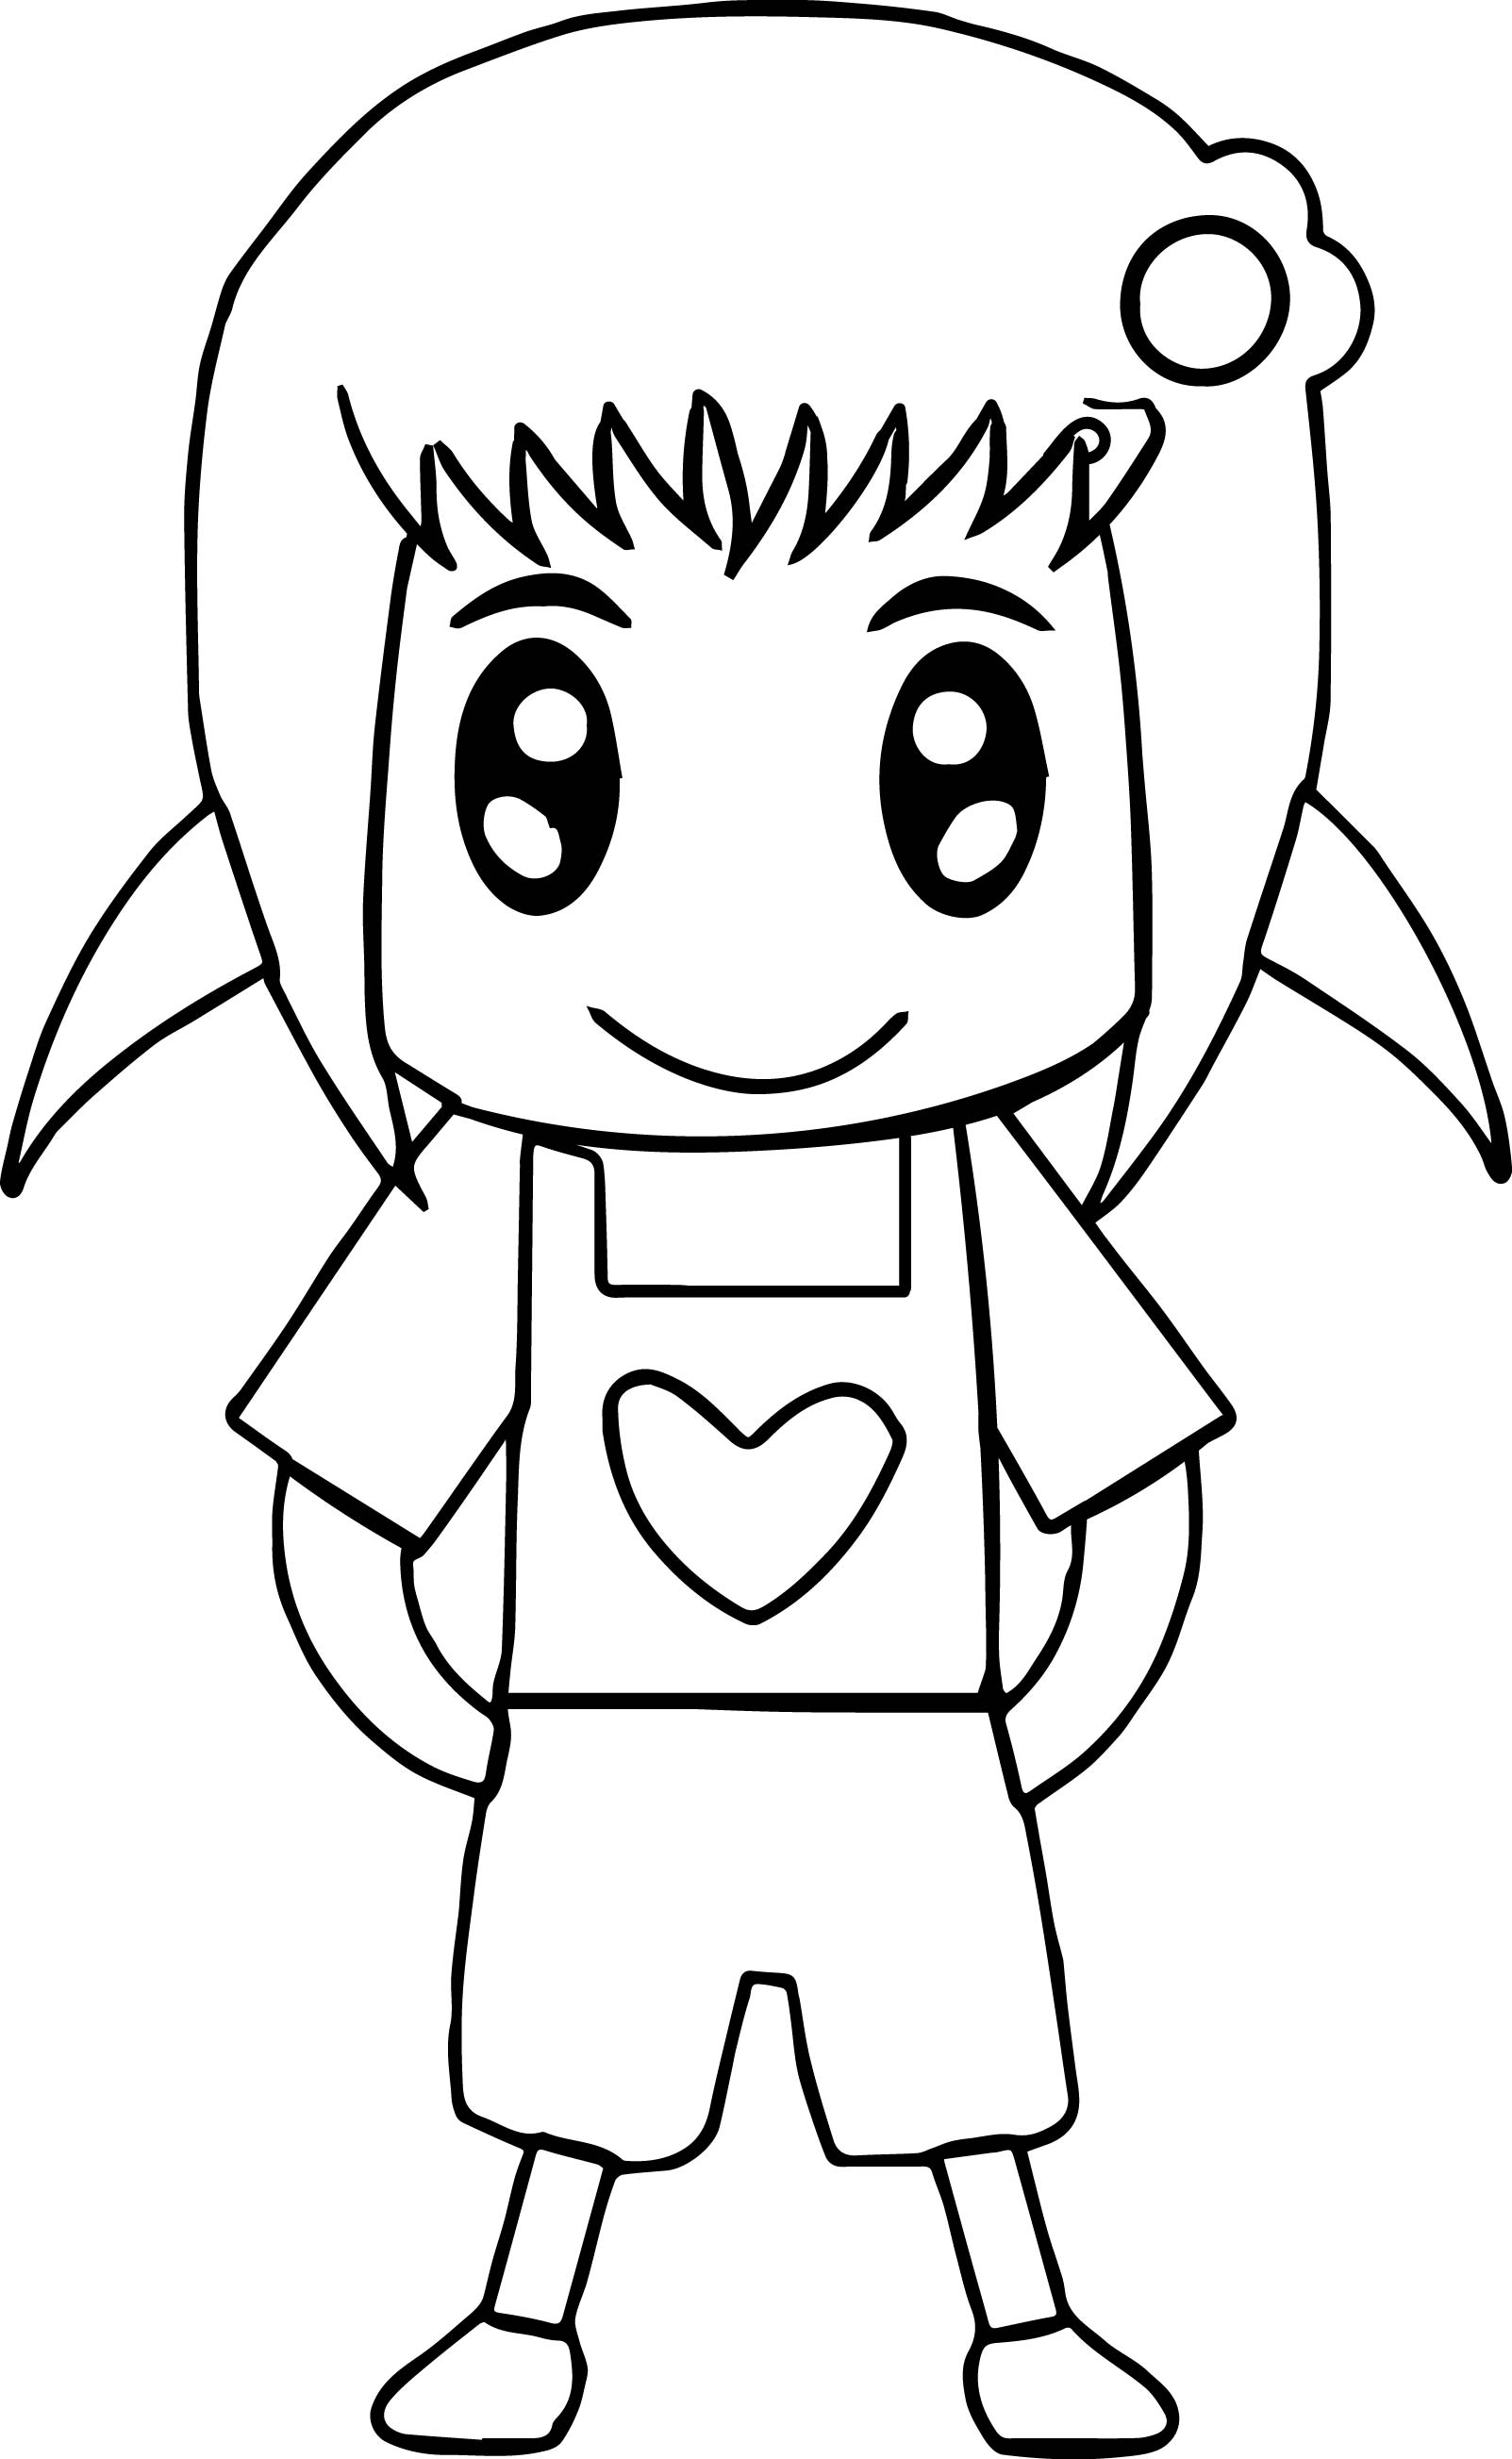 Cute Little Boy And Girl Wallpapers Cute Anime Girl Easy Coloring Page Wecoloringpage Com